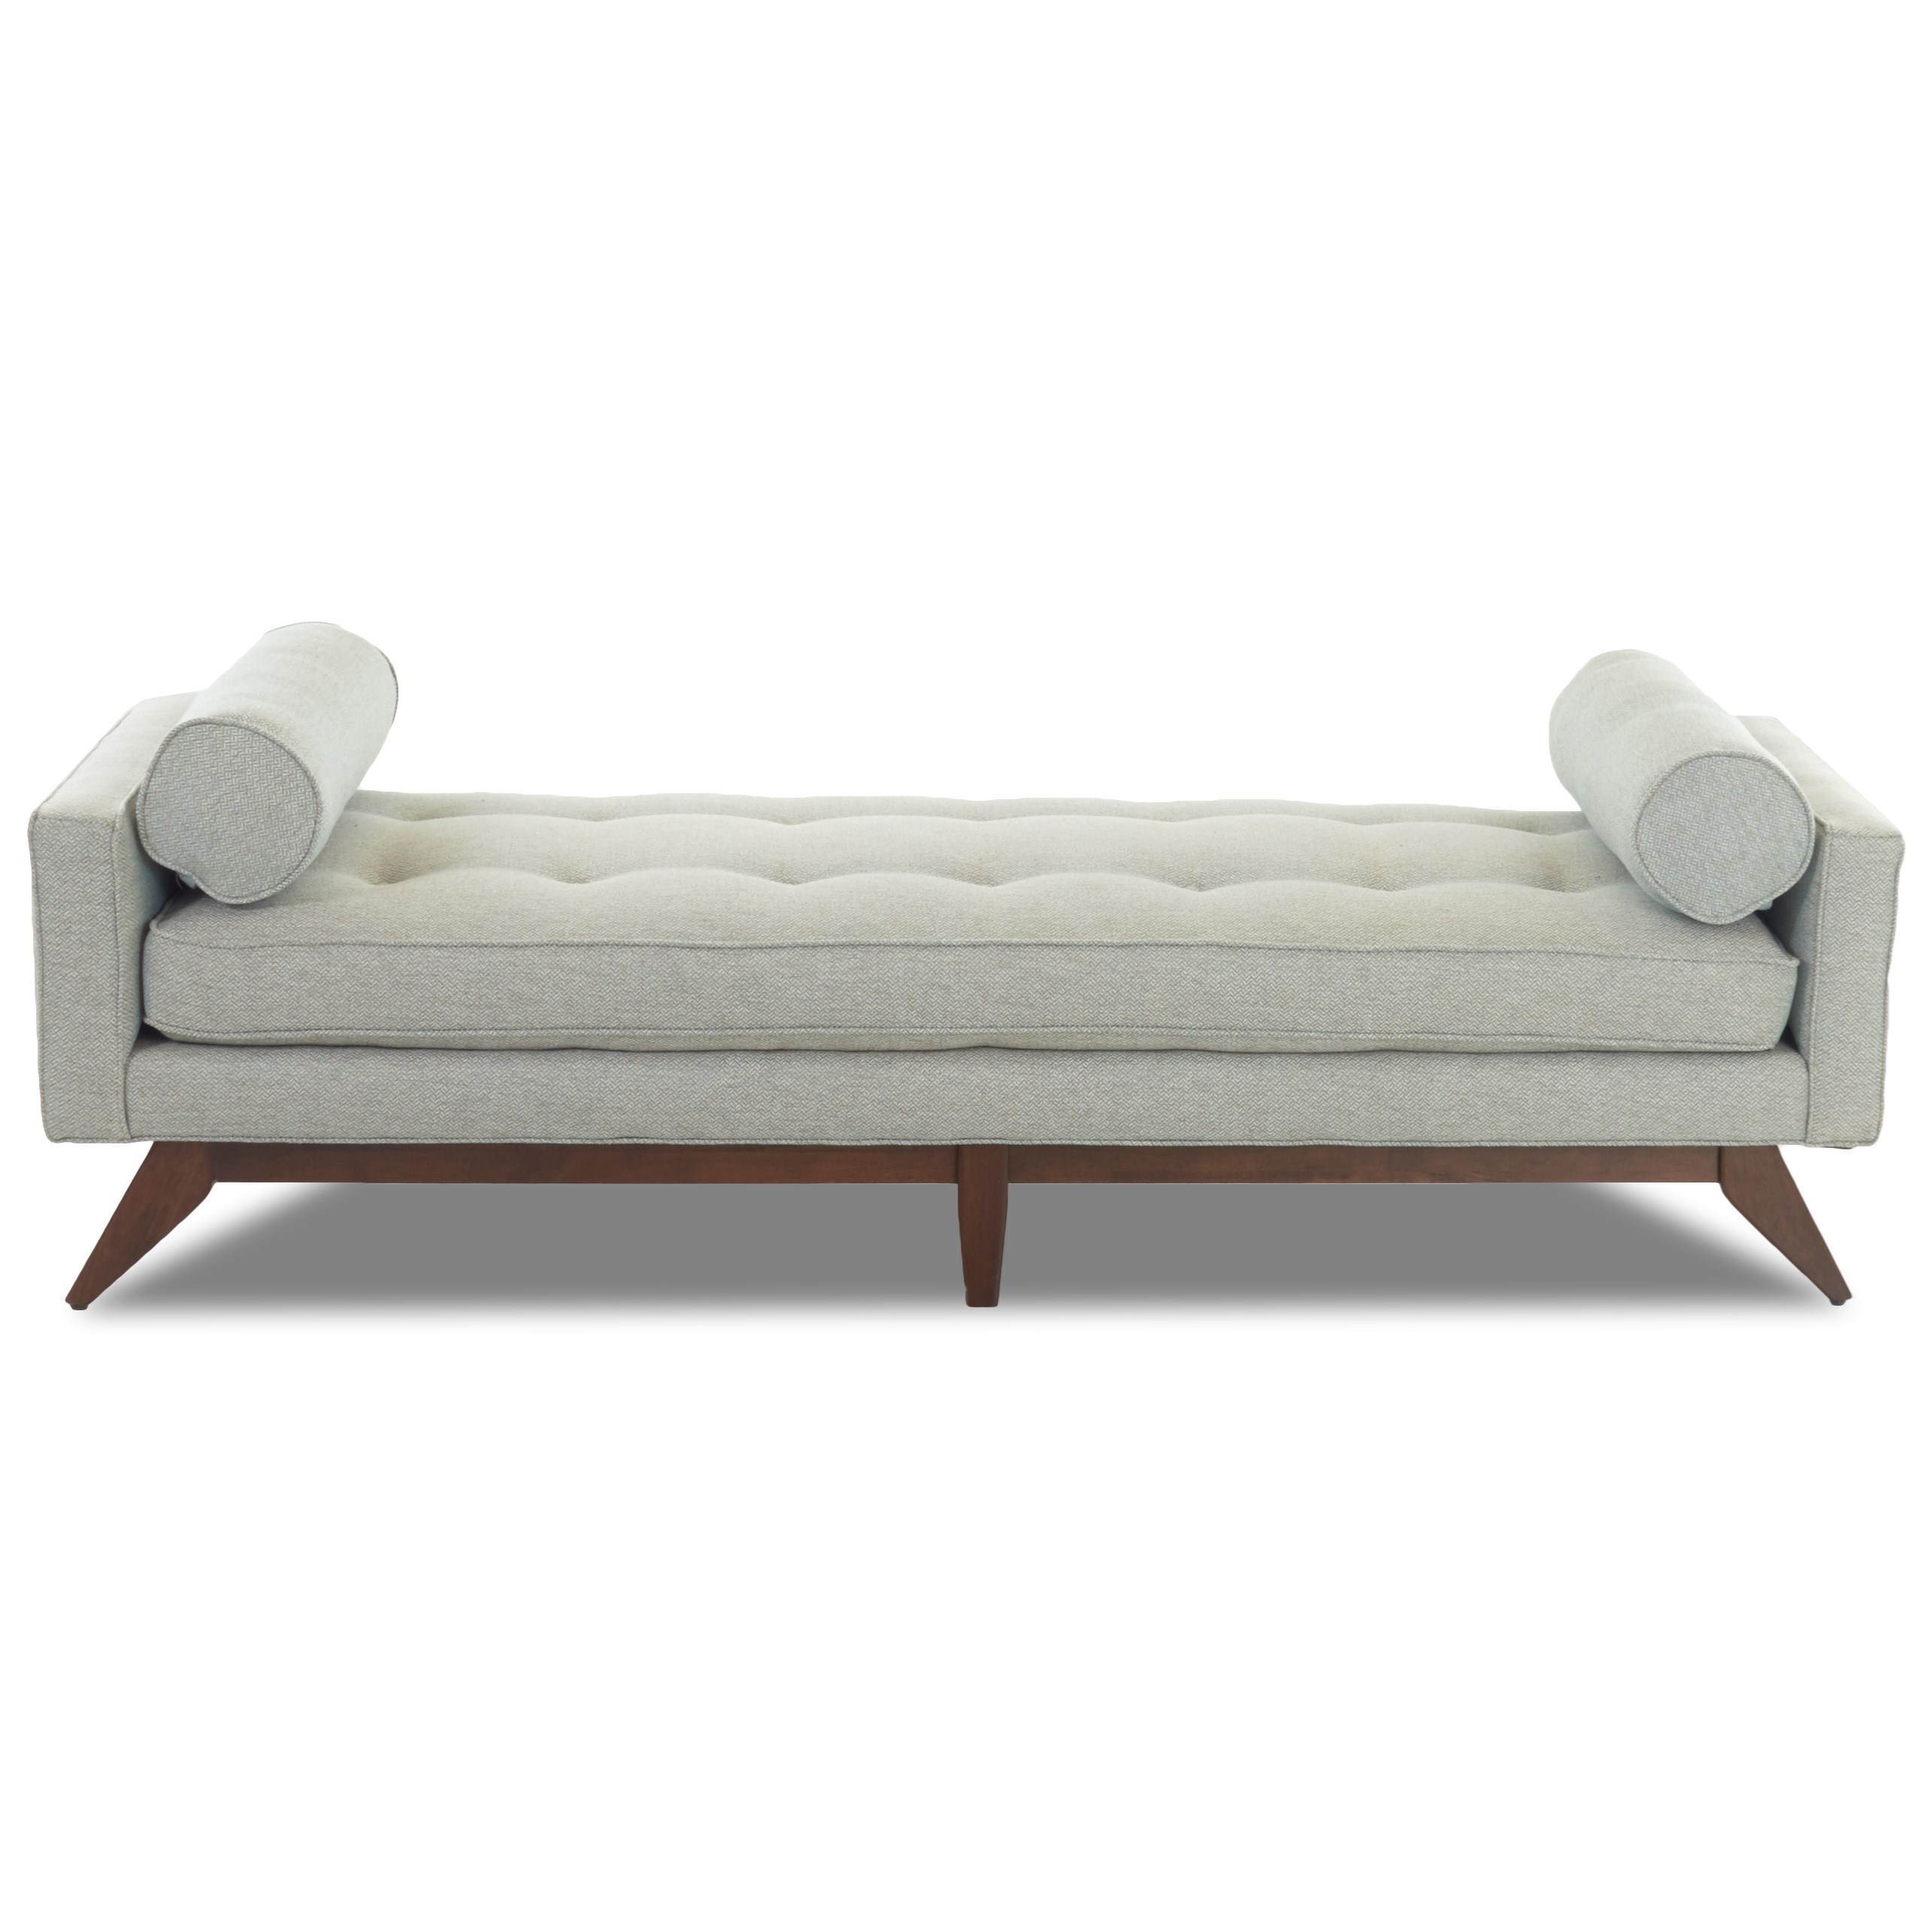 Klaussner Fairfax Mid Century Modern Backless Sofa/Bench | Sheelyu0027s  Furniture U0026 Appliance | Upholstered Benches